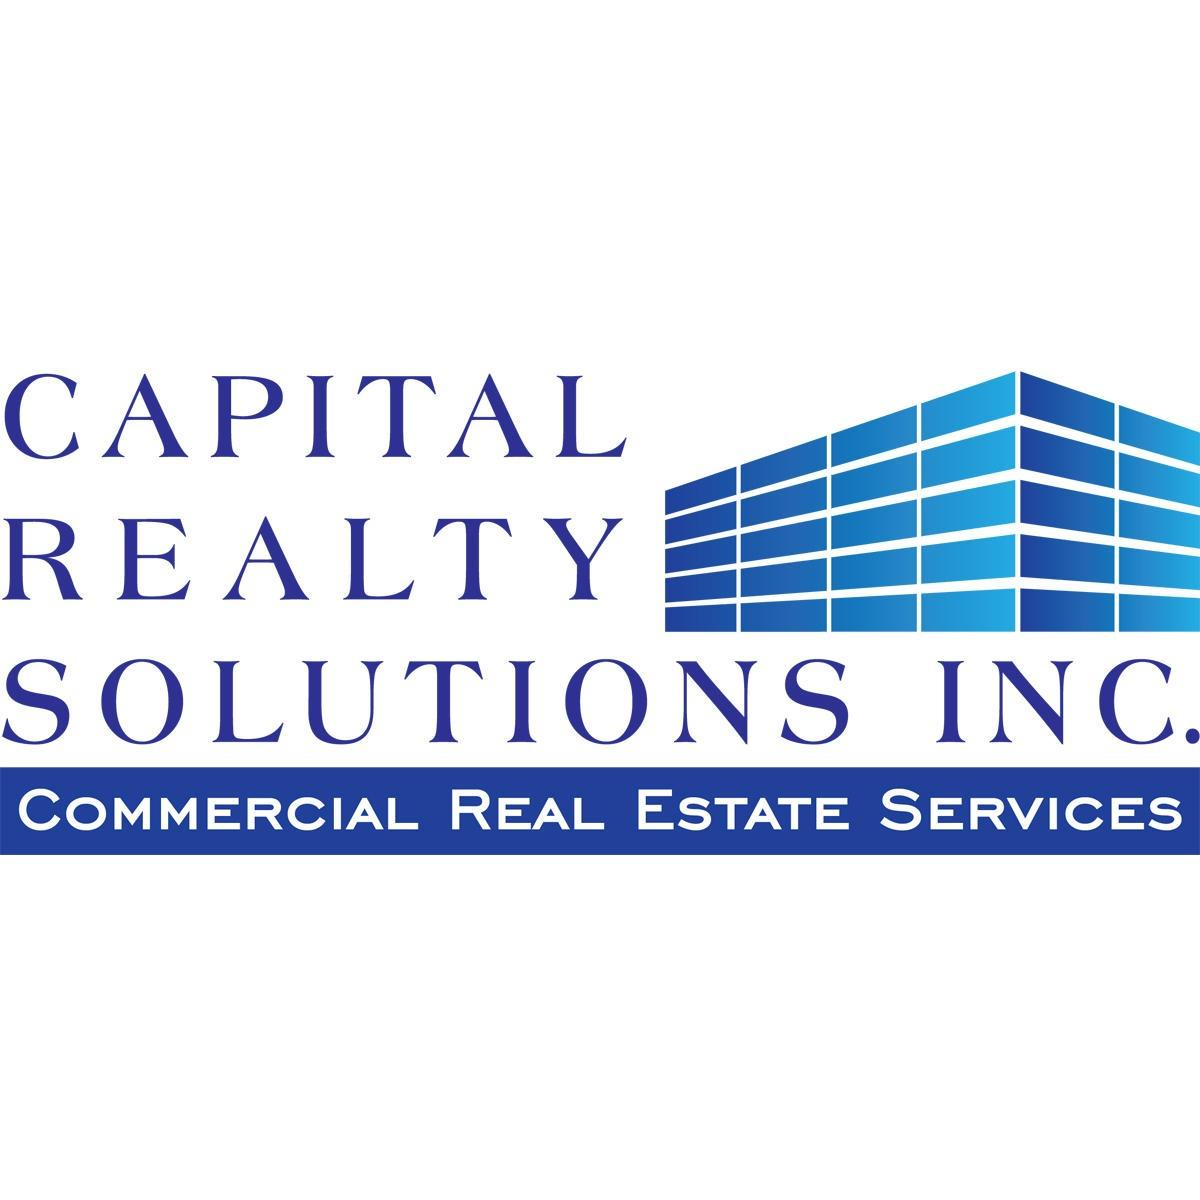 Capital Realty Solutions Inc